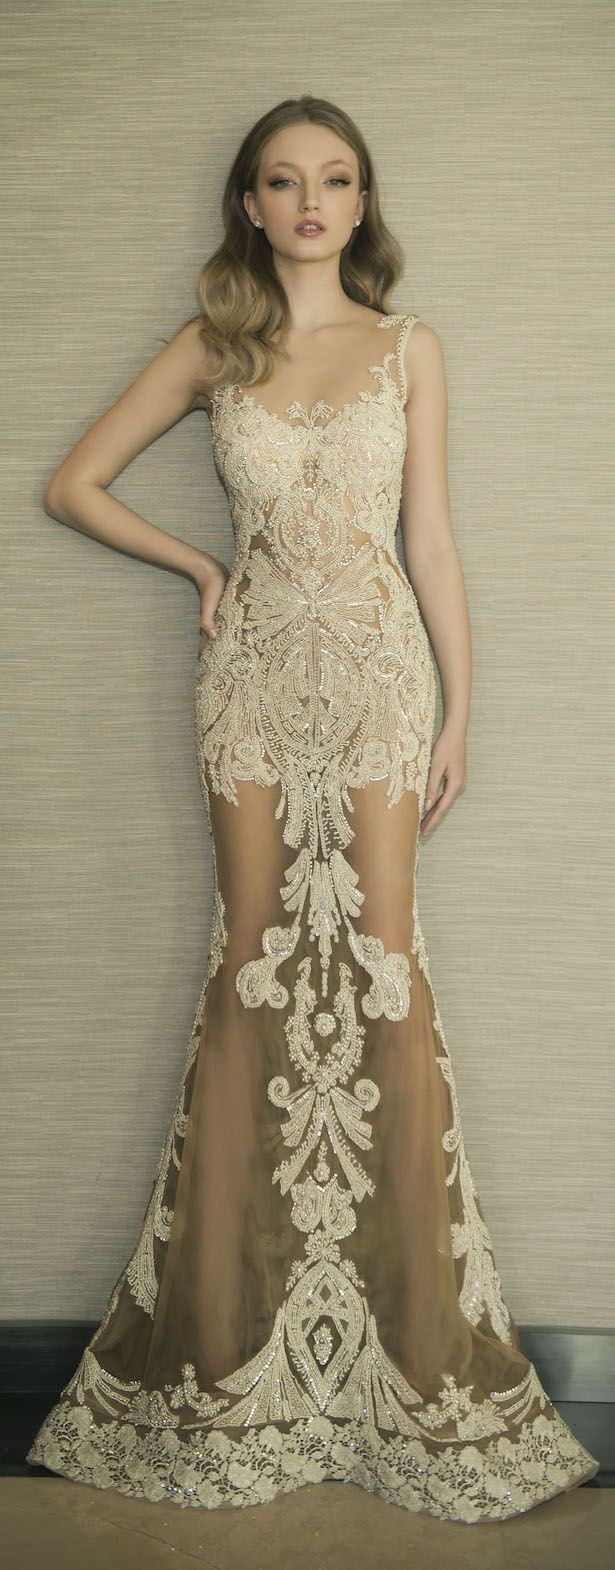 Beautiful dresses classy best outfits page of classy